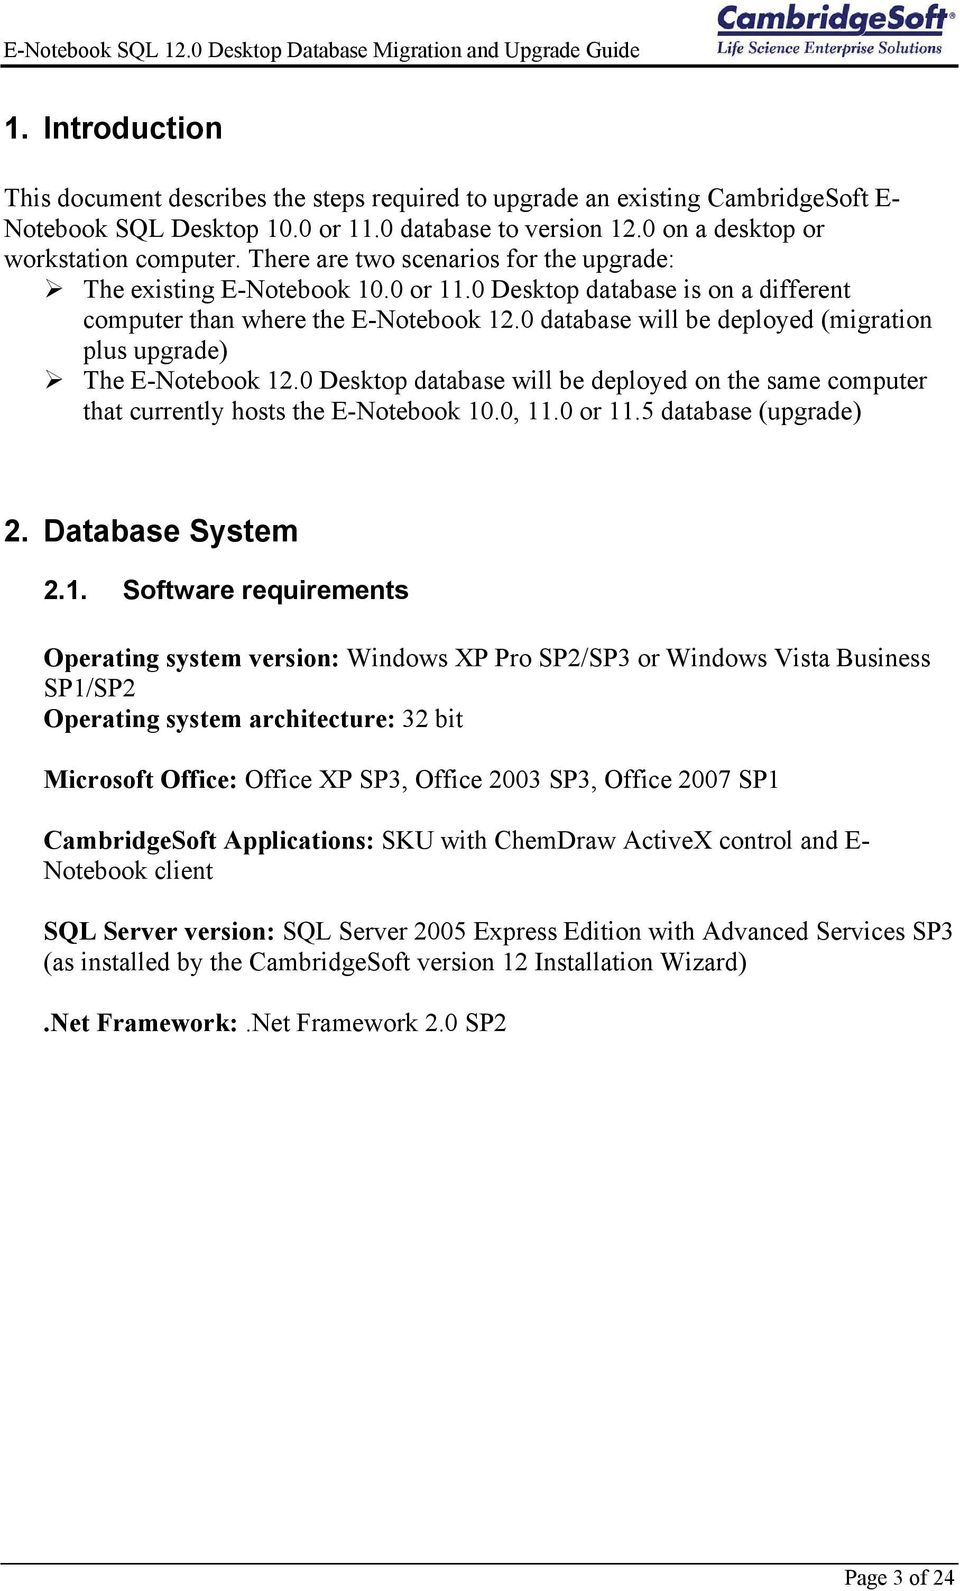 0 database will be deployed (migration plus upgrade) The E-Notebook 12.0 Desktop database will be deployed on the same computer that currently hosts the E-Notebook 10.0, 11.0 or 11.